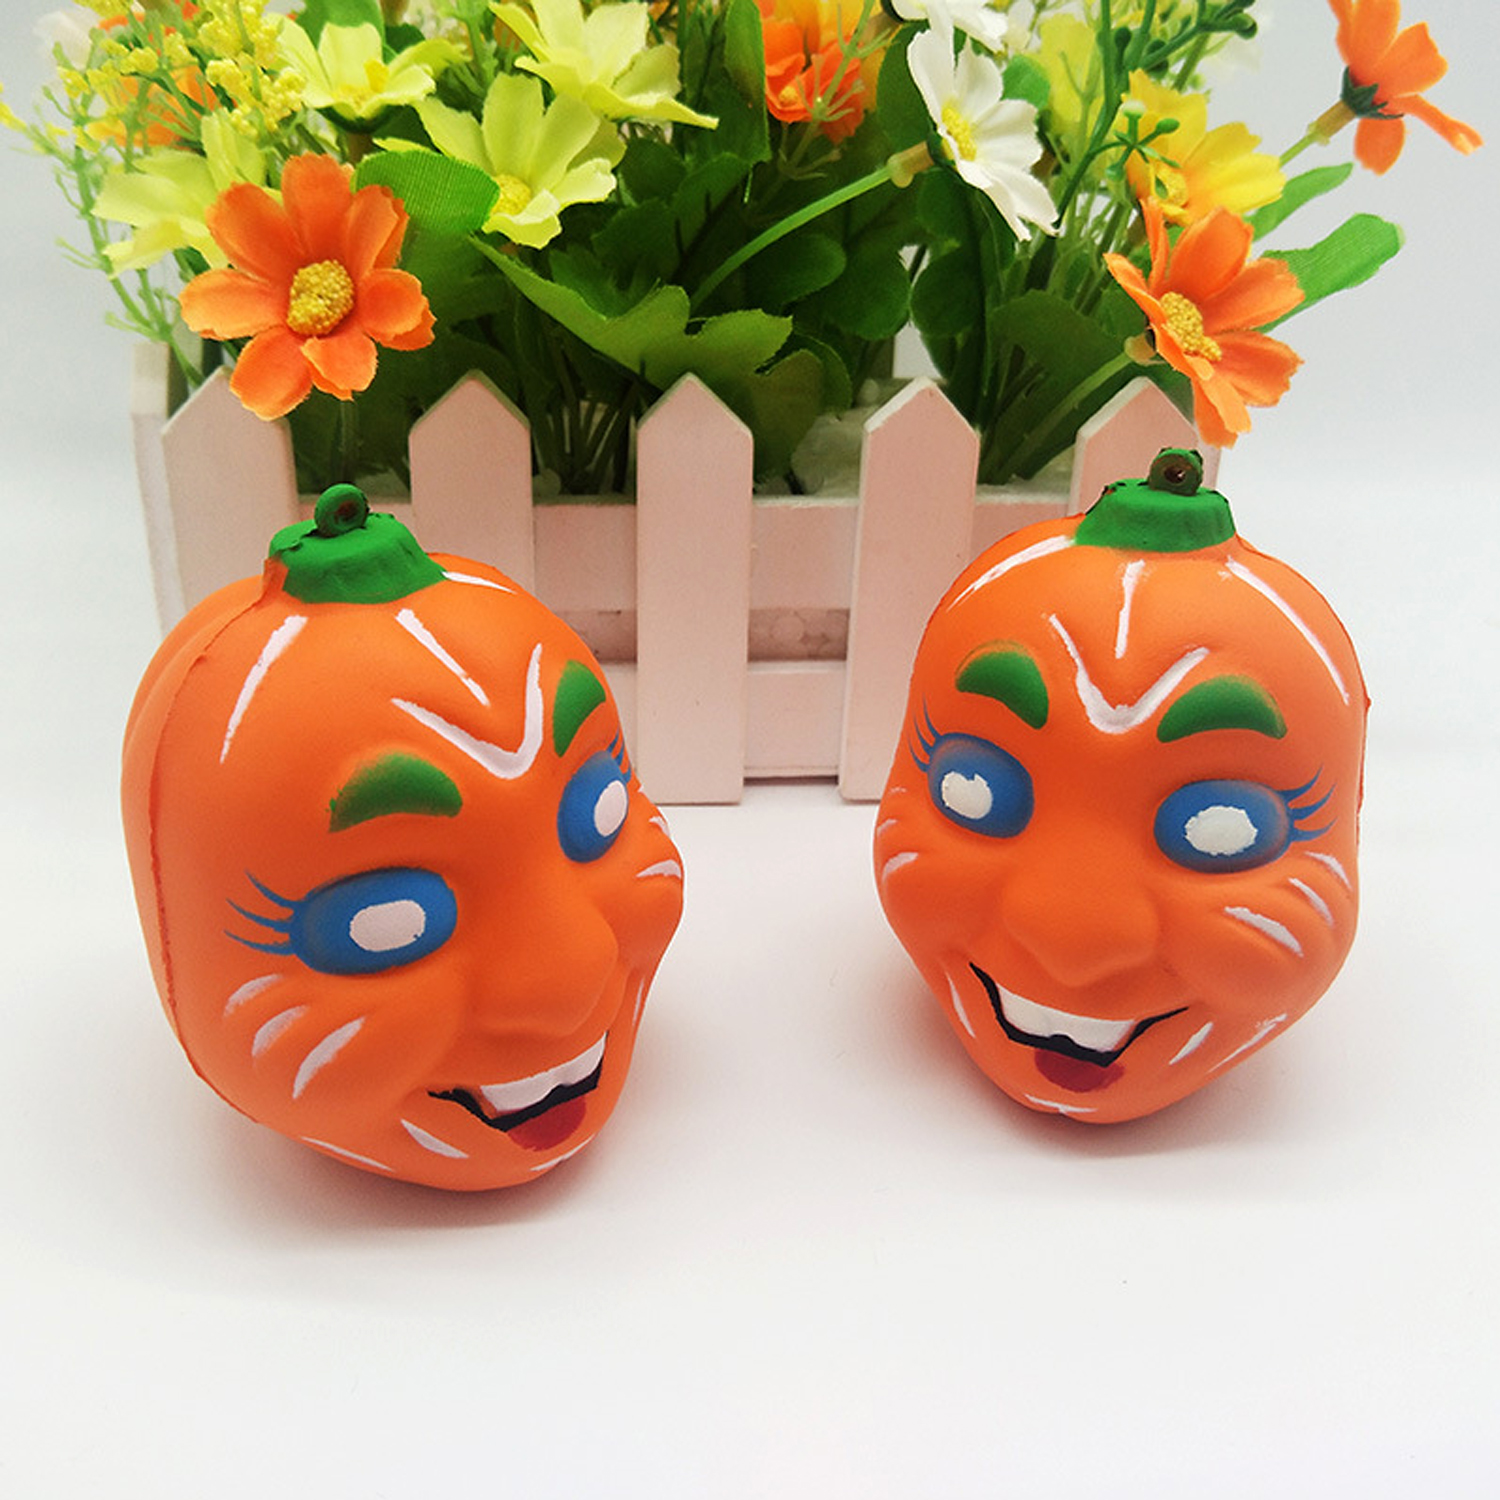 Halloween Squishy Pumpkin Toy Slow Rising Squeeze Squishies Toy For Children Adults Relieves Stress Anxiety Halloween Decoration